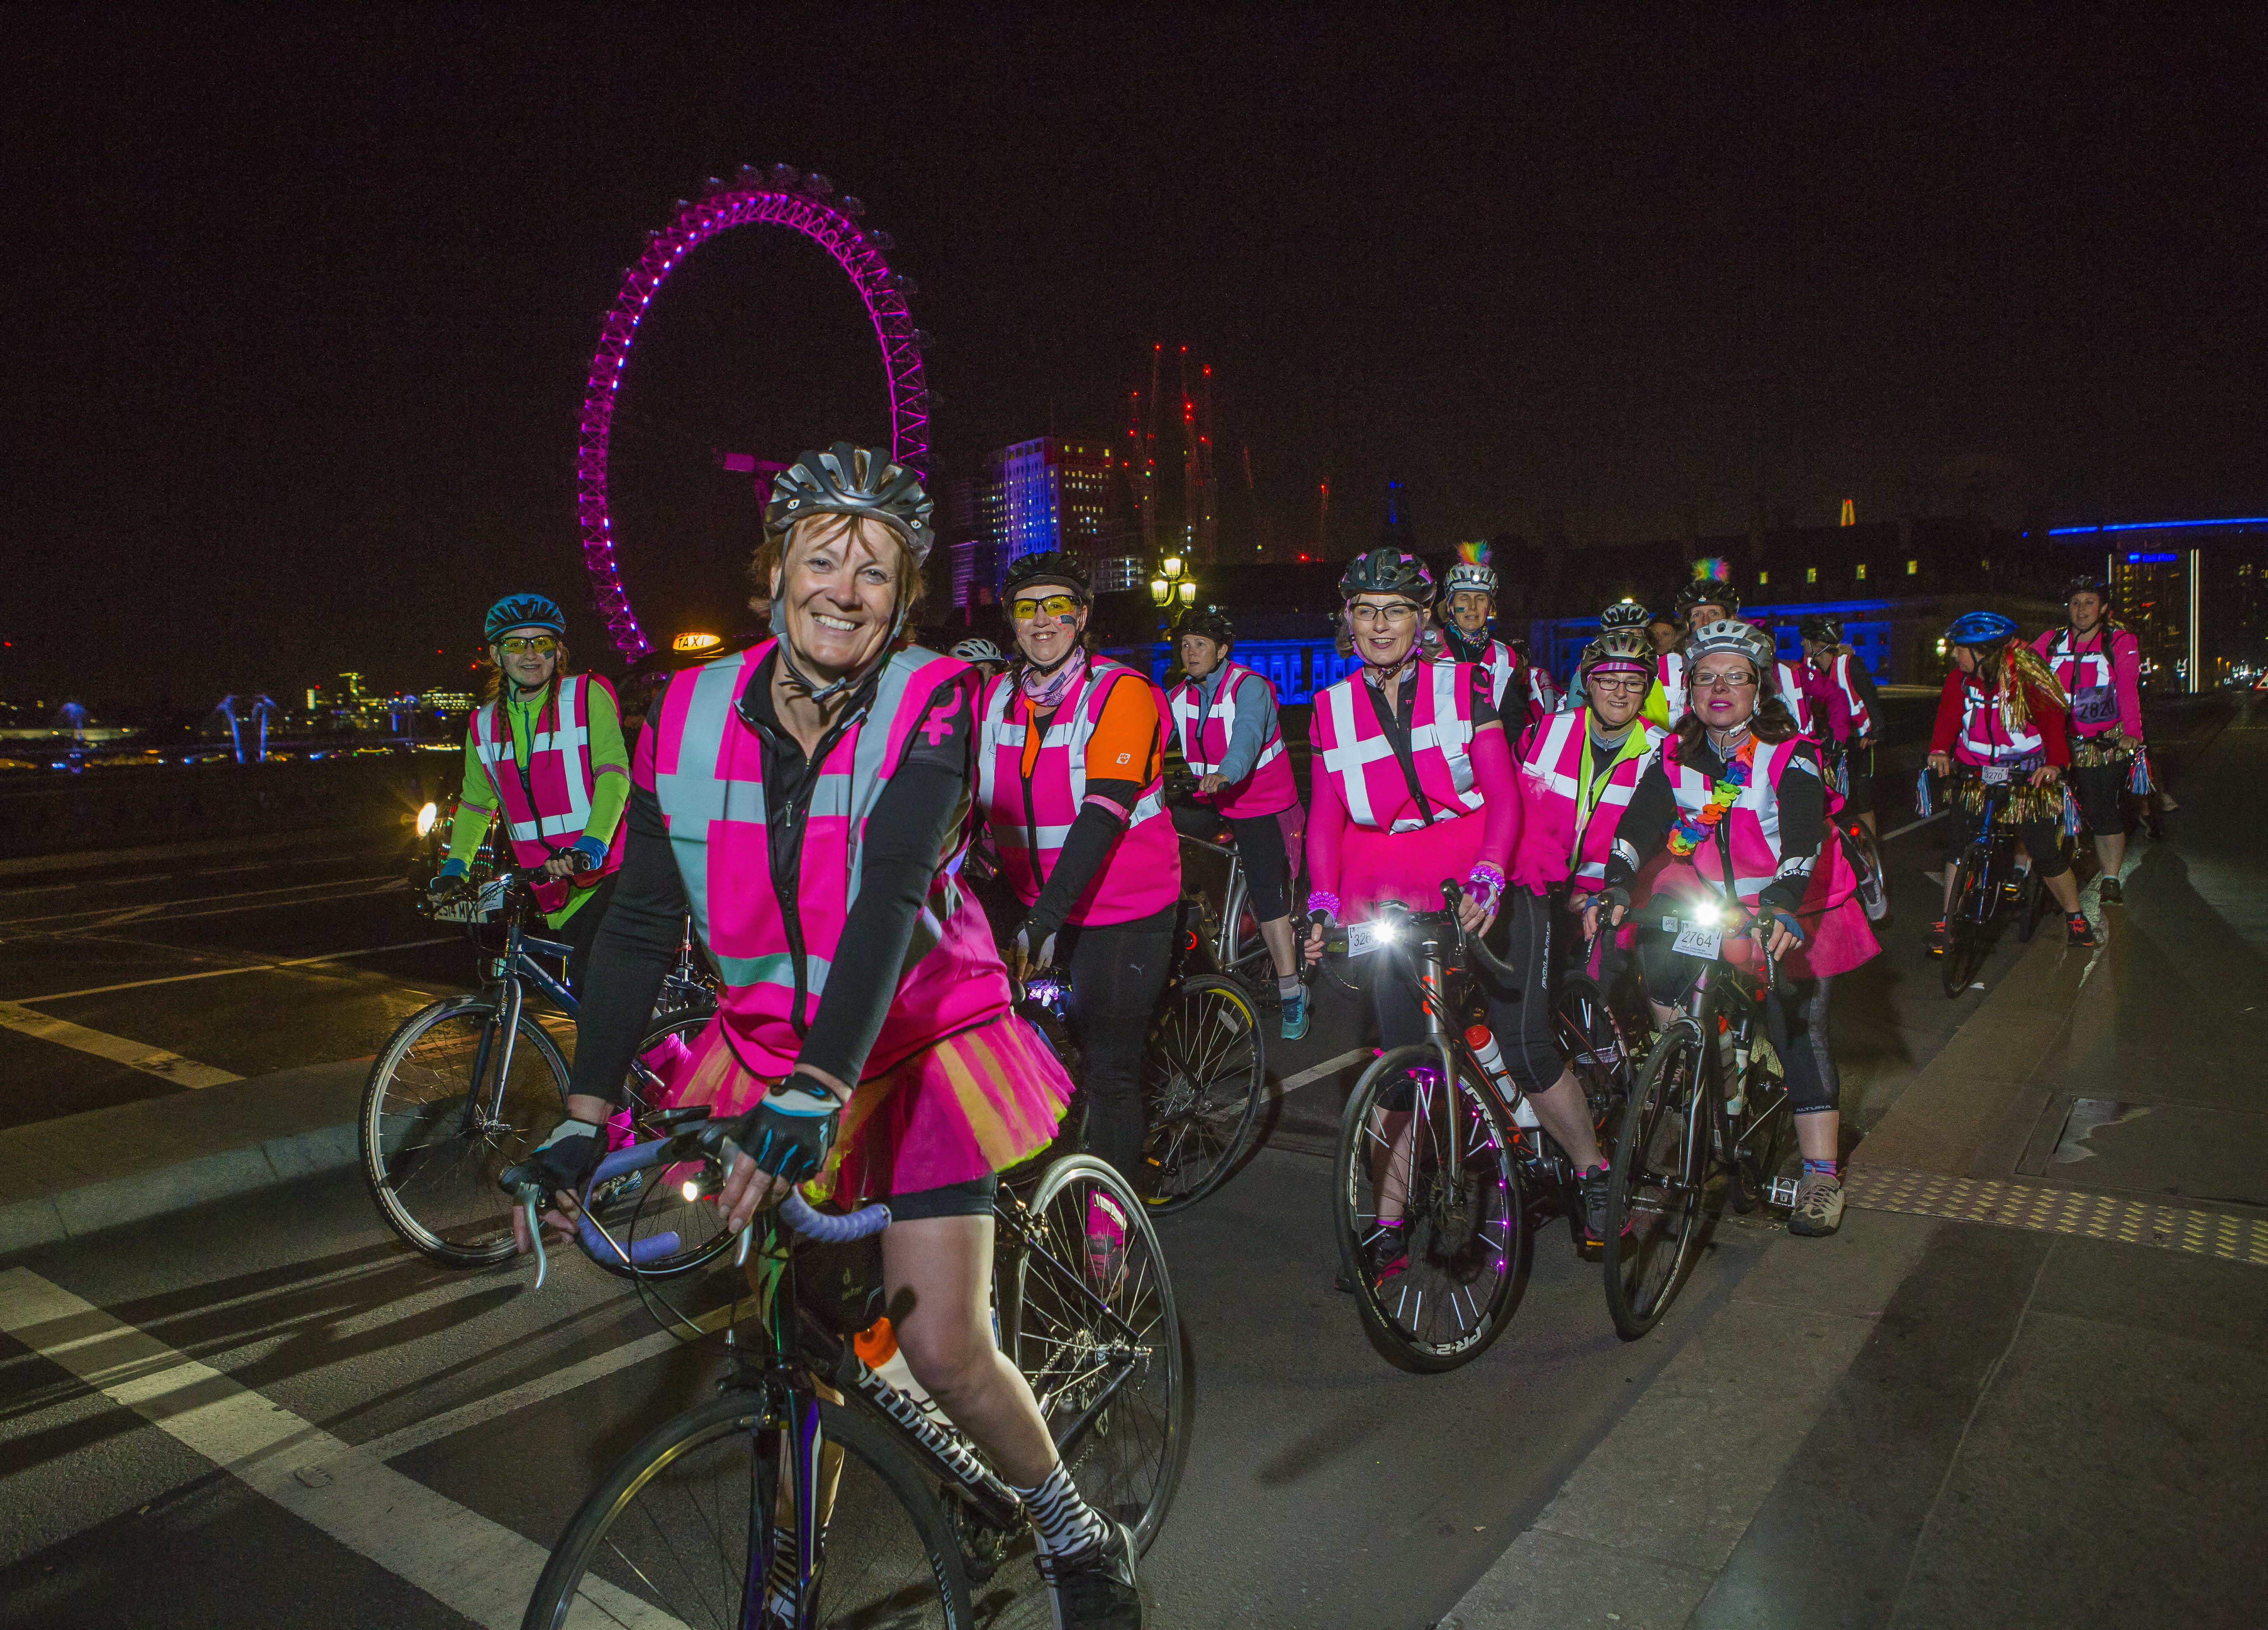 Ride the Night Cyclists at London Eye